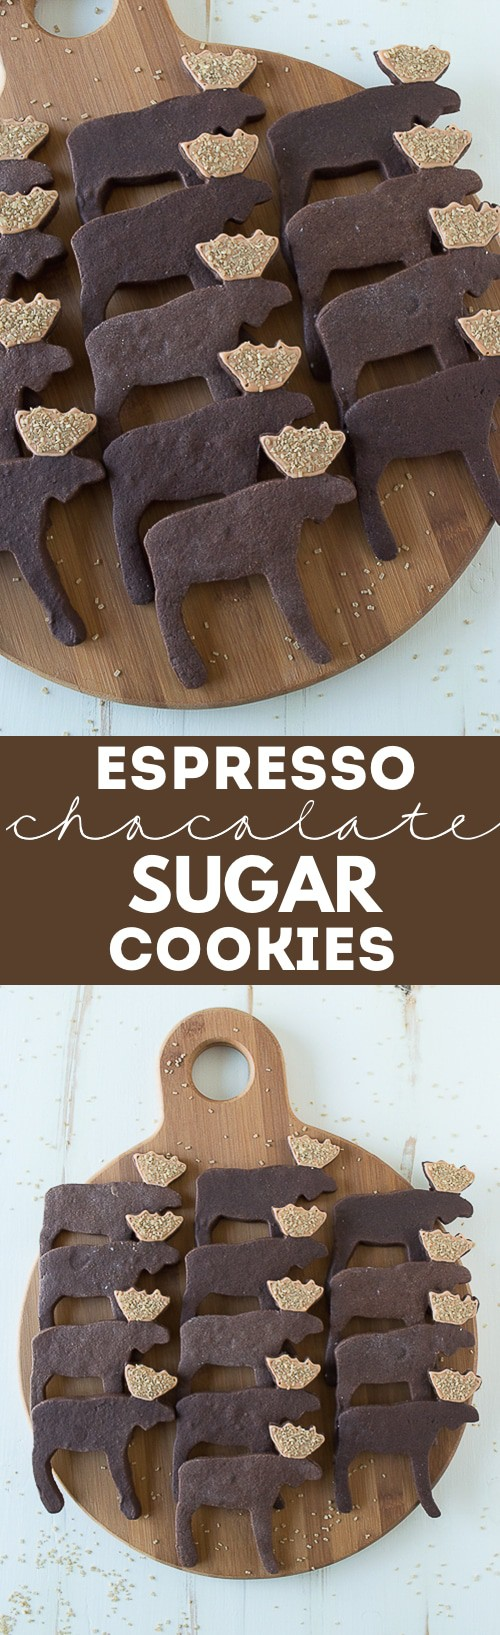 Use a moose cookie cutter to make these ADORABLE espresso chocolate moose sugar cookies!! Or use any cookie cutter with this espresso chocolate sugar cookie recipe!